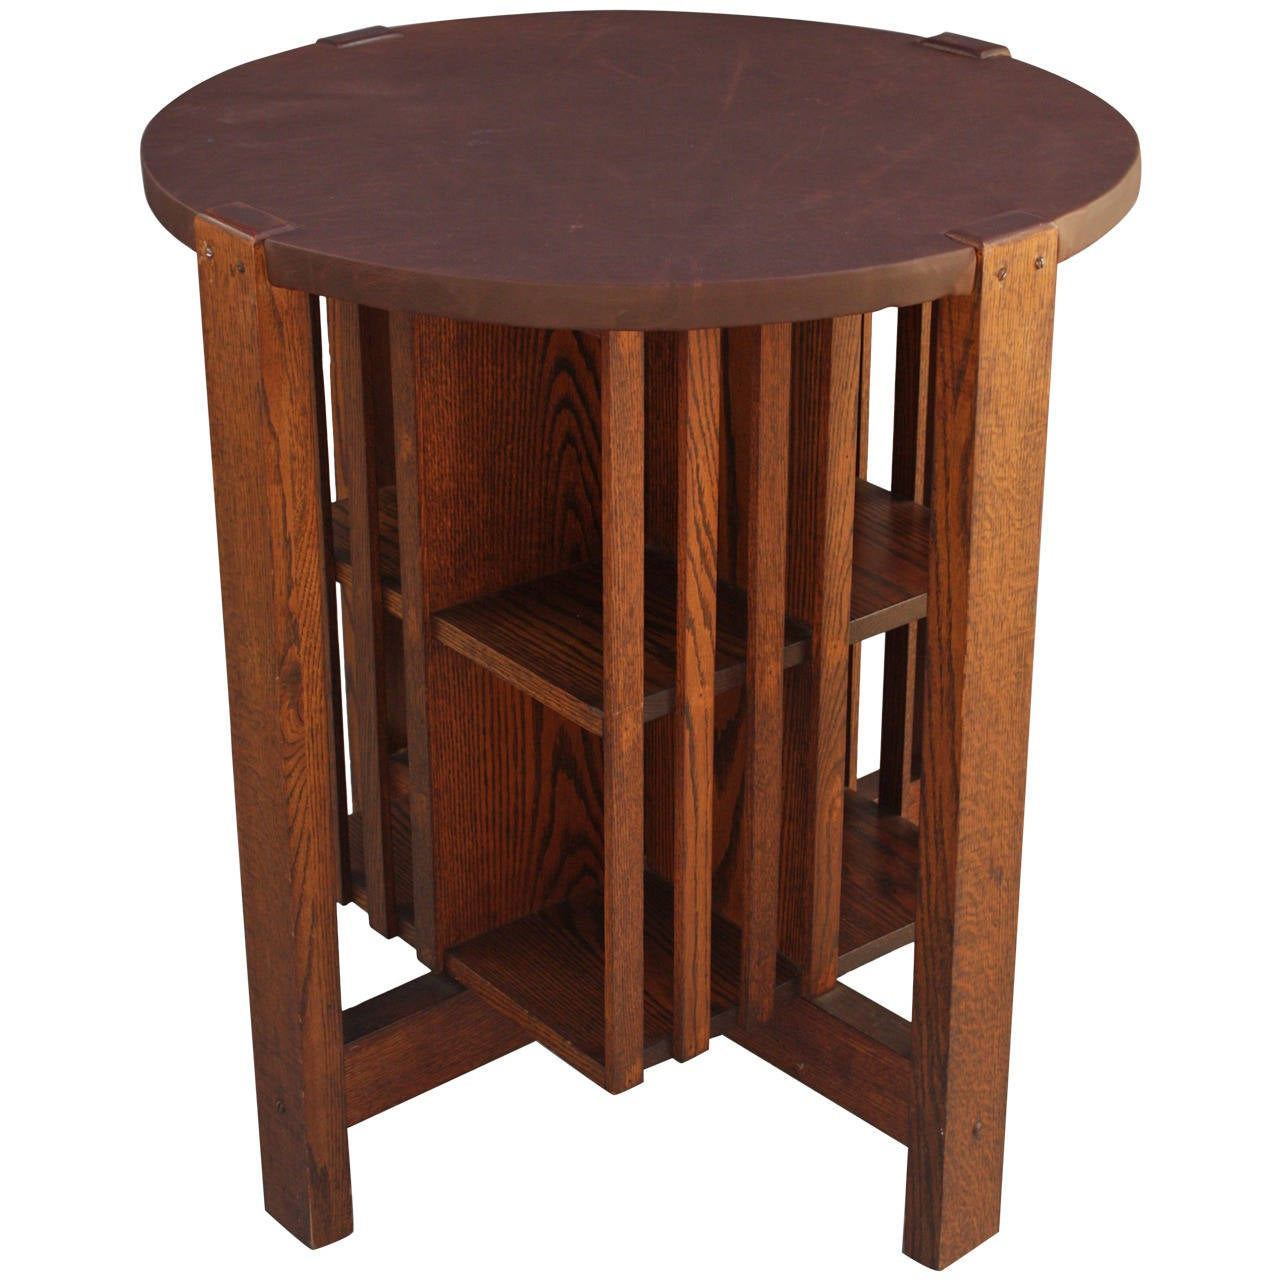 Round Arts & Crafts Table With Revolving Bookcase 1